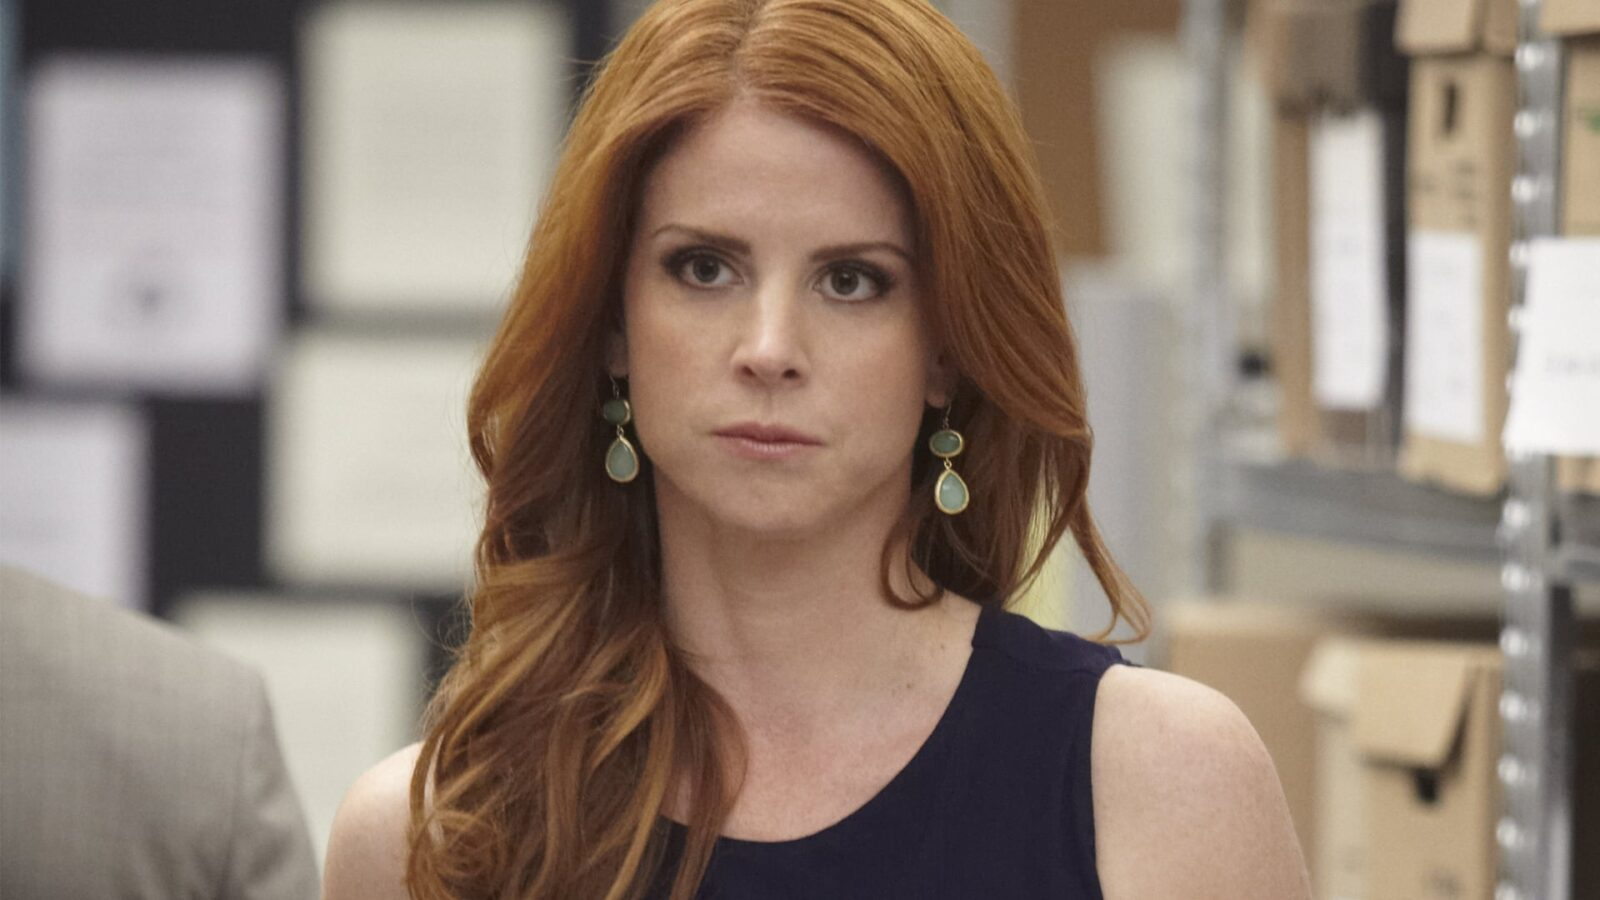 Sarah Rafferty earrings photo